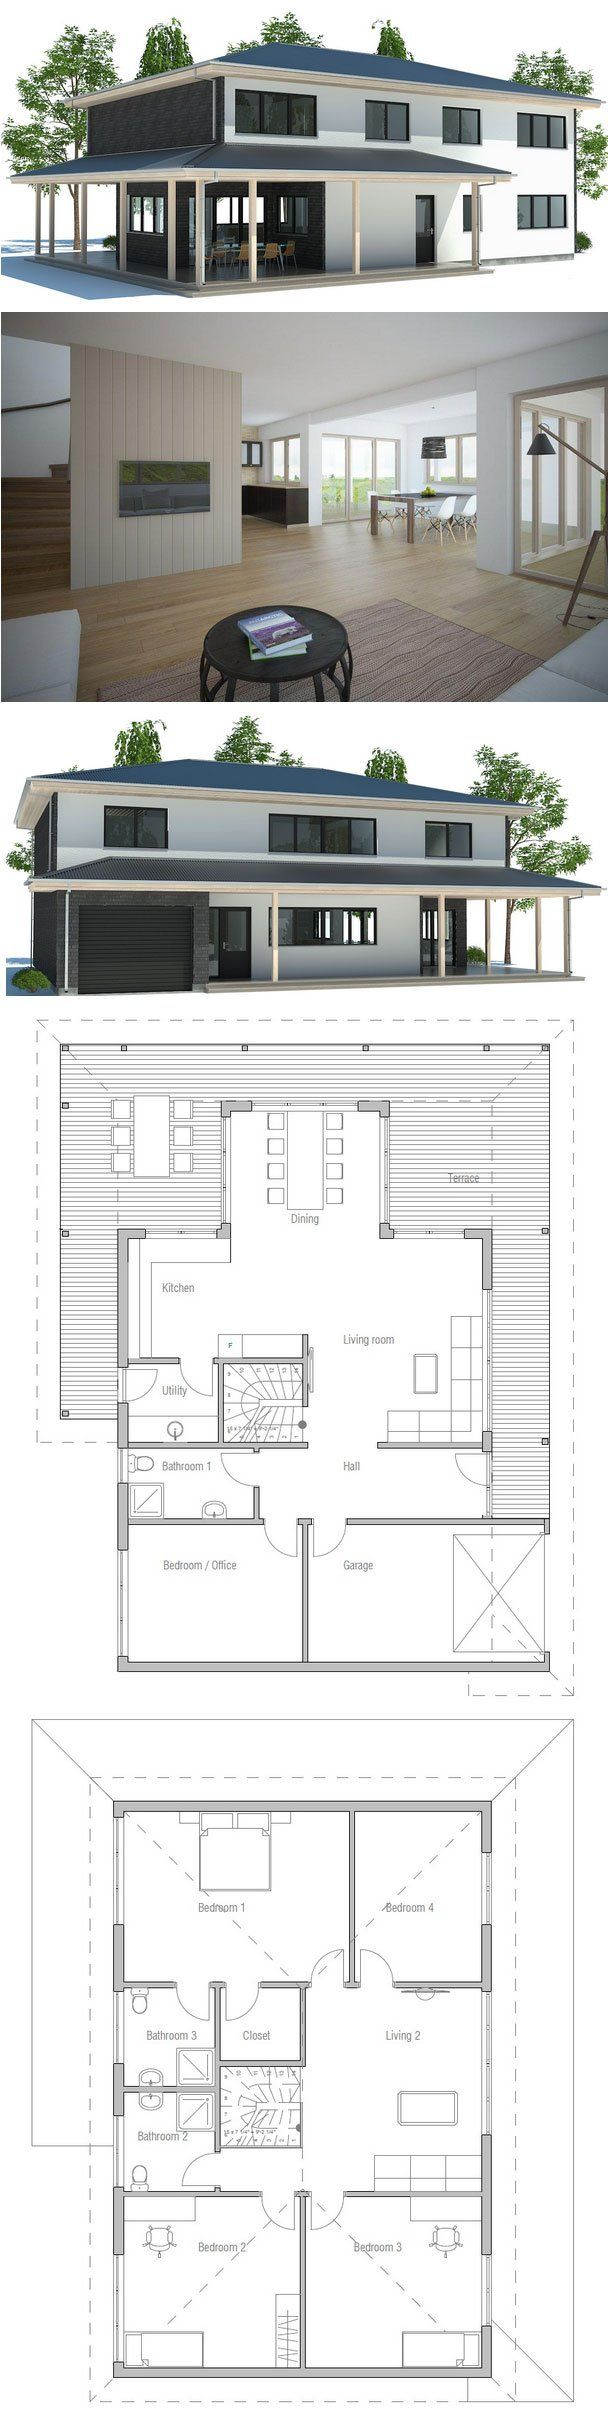 6b1b6972dd44a4ef791029f09444bcc4 - Download Small House Design 2Nd Floor With Terrace  PNG